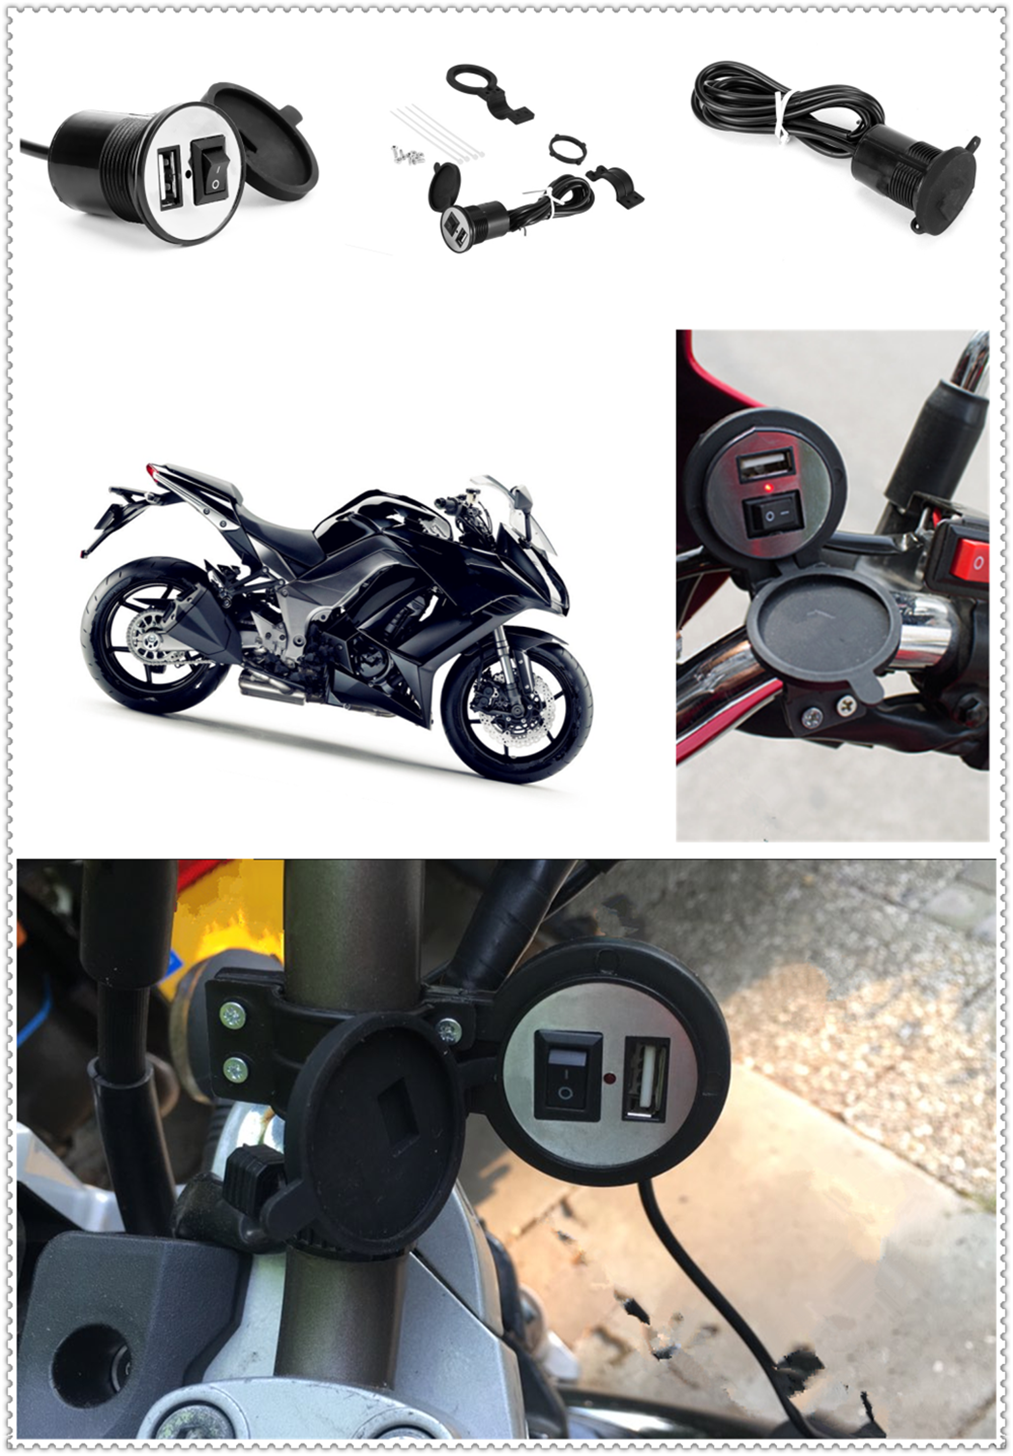 12-24V Motorcycle USB Charger Power Adapter Waterproof For YAMAHA YZF 600R Thundercat R1 R6 R25 R3 FZ1 FAZER FZS 1000S